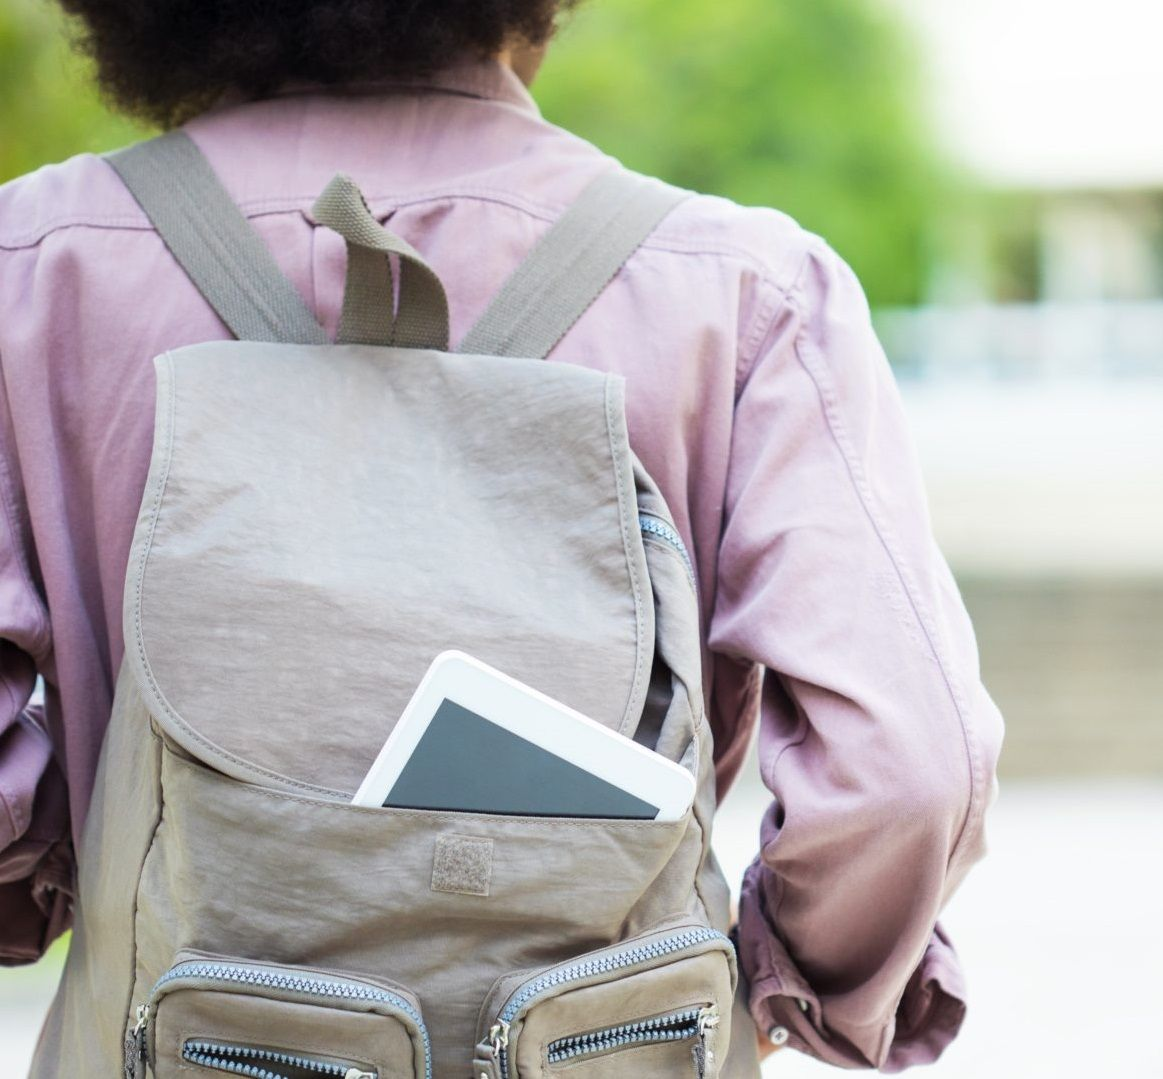 Save on Back-to-School at Habitat ReStores